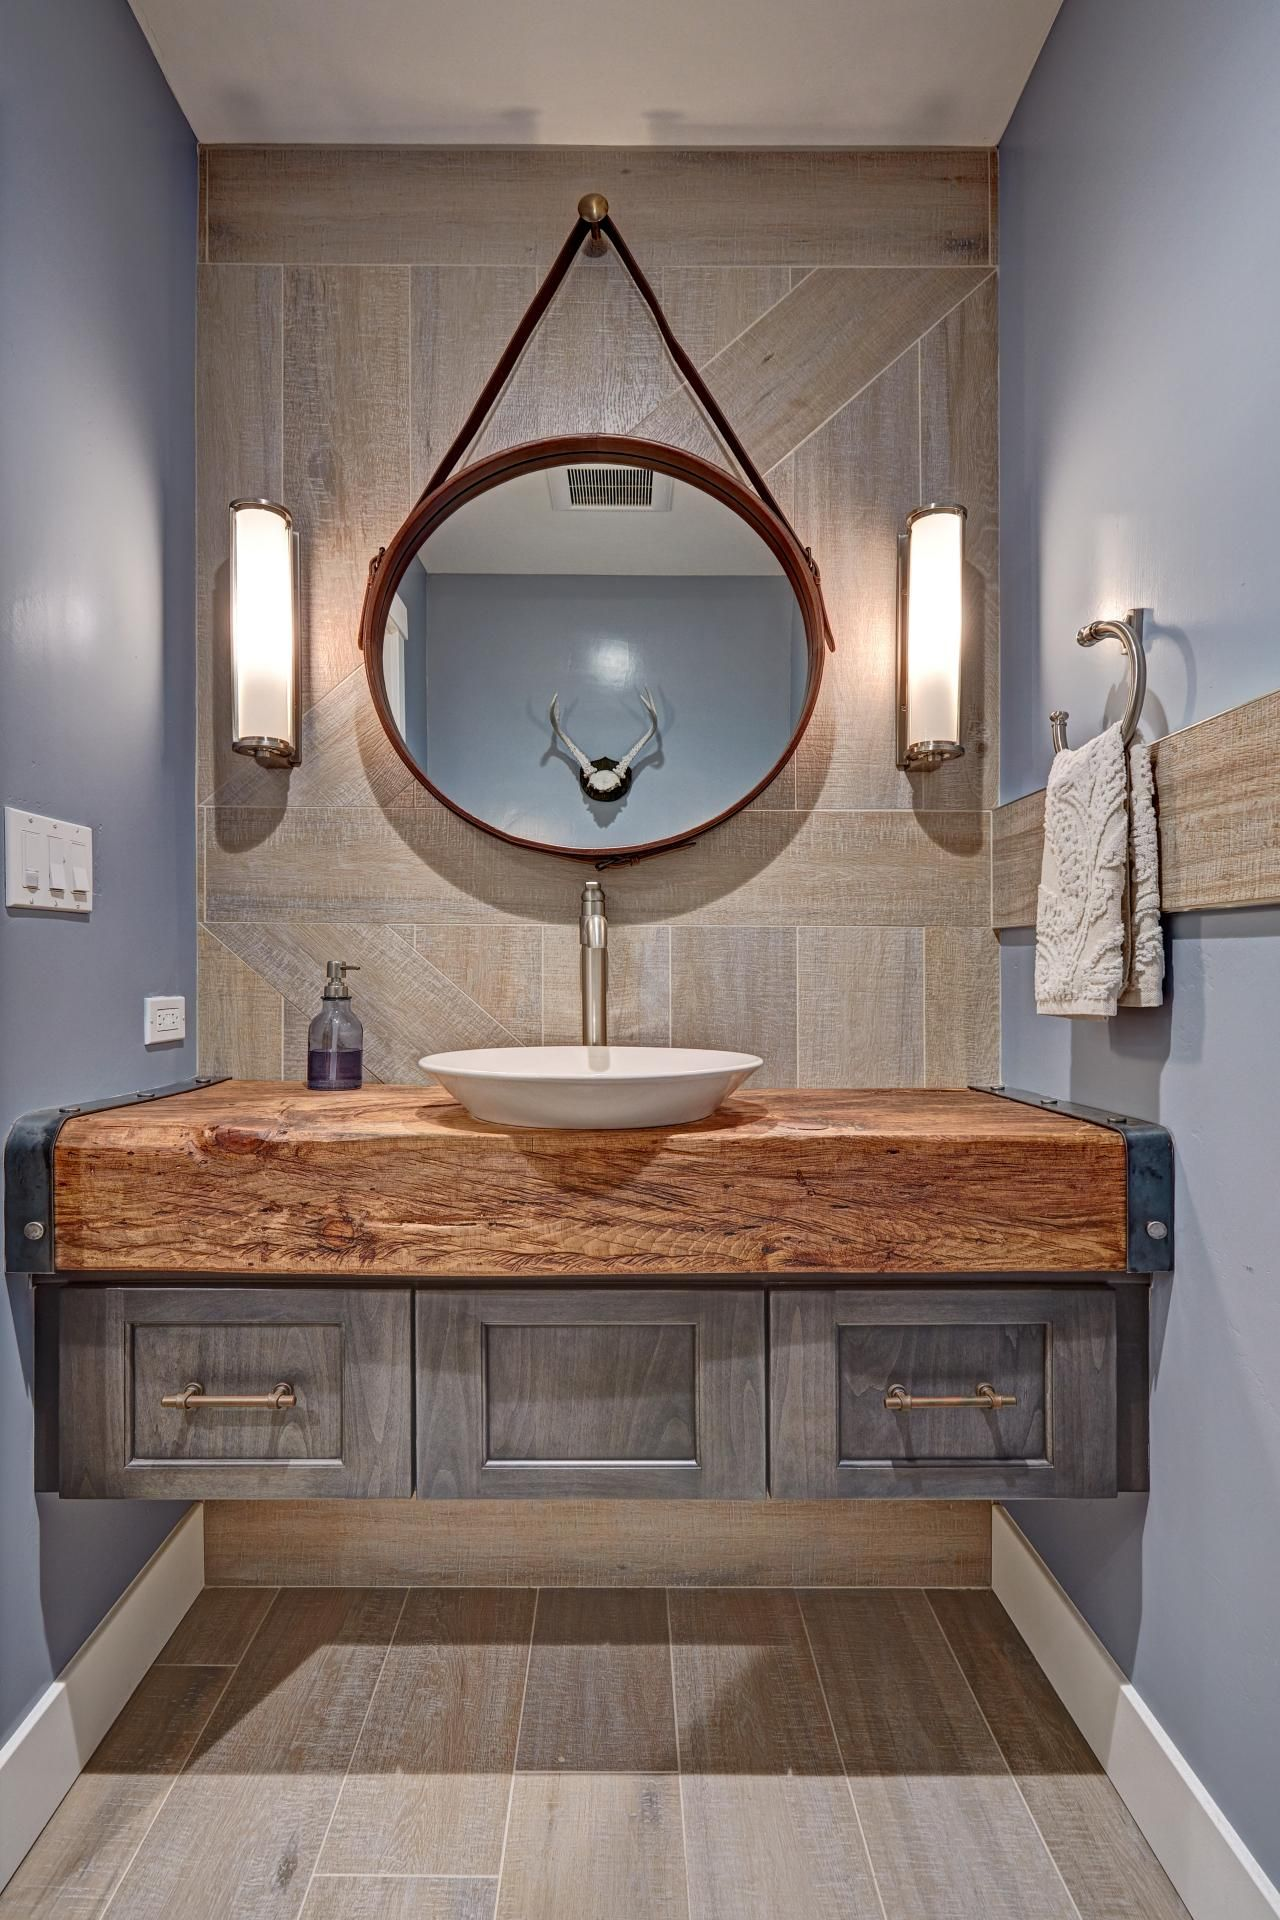 This Bathroom Features Both Earthy And Industrial Elements A Vessel Sink Atop